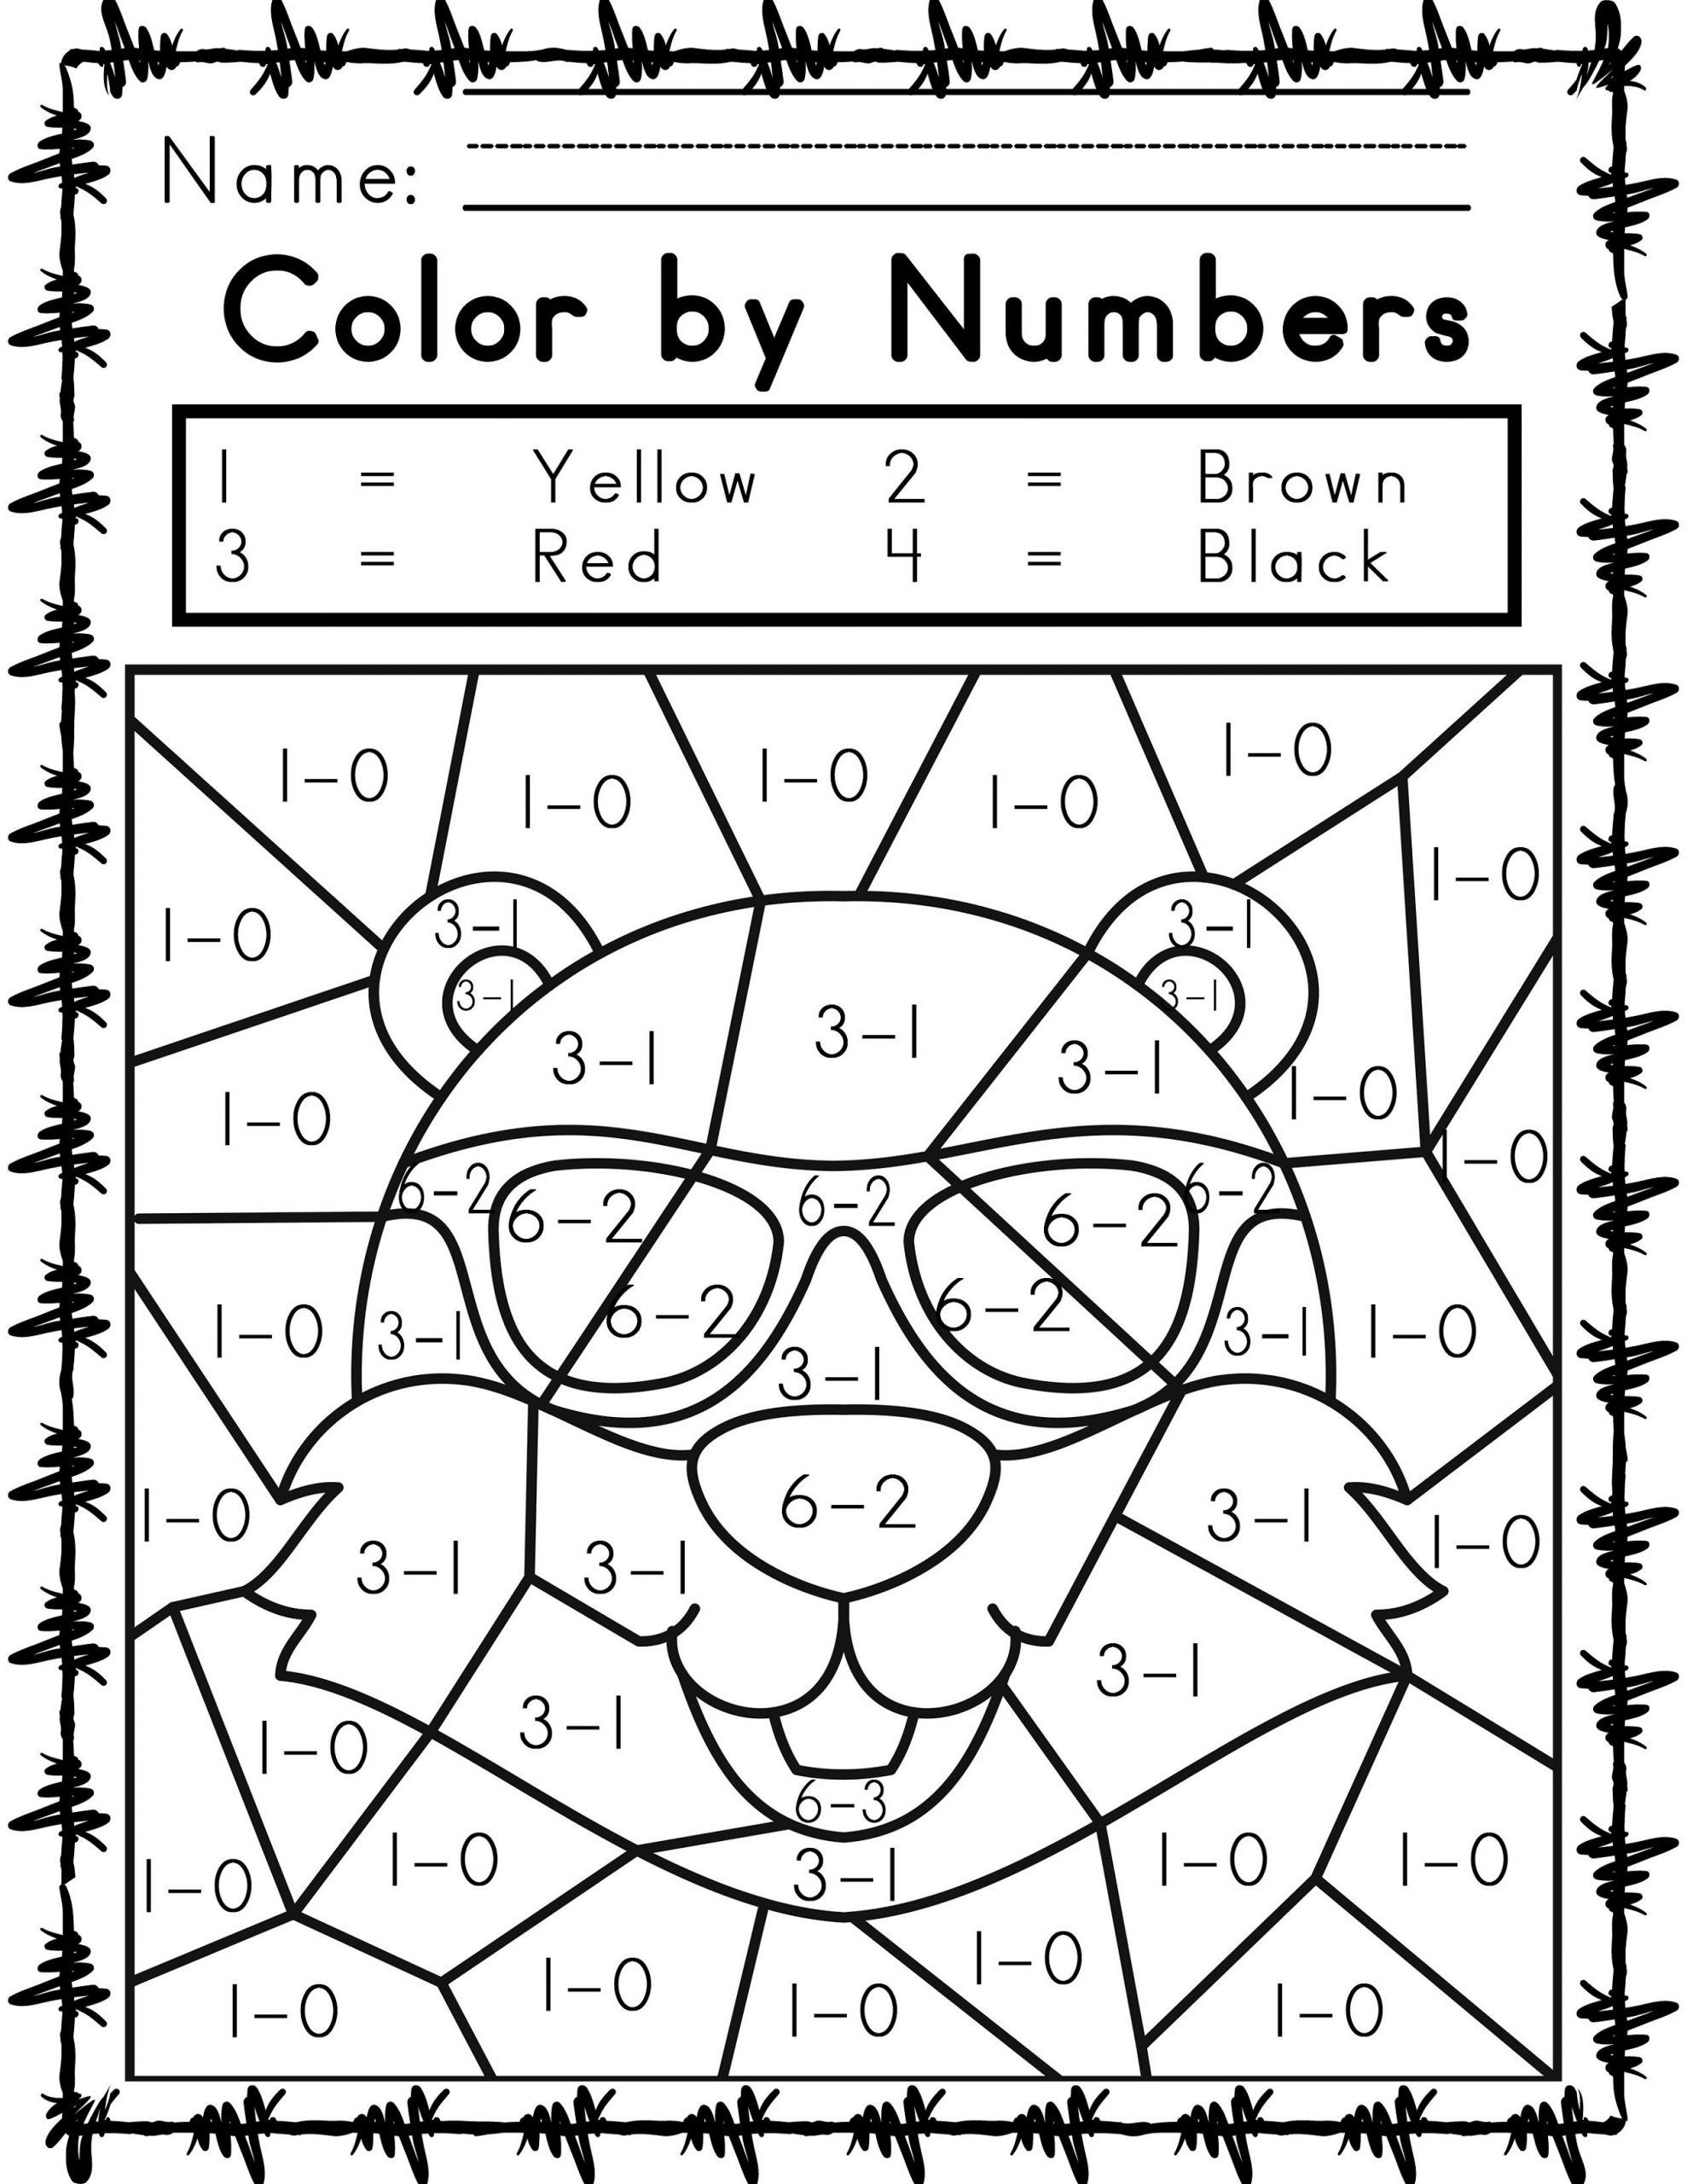 Multiplication Fact Fluency Worksheets Worksheets Printable Easy and Hard Color by Number Games